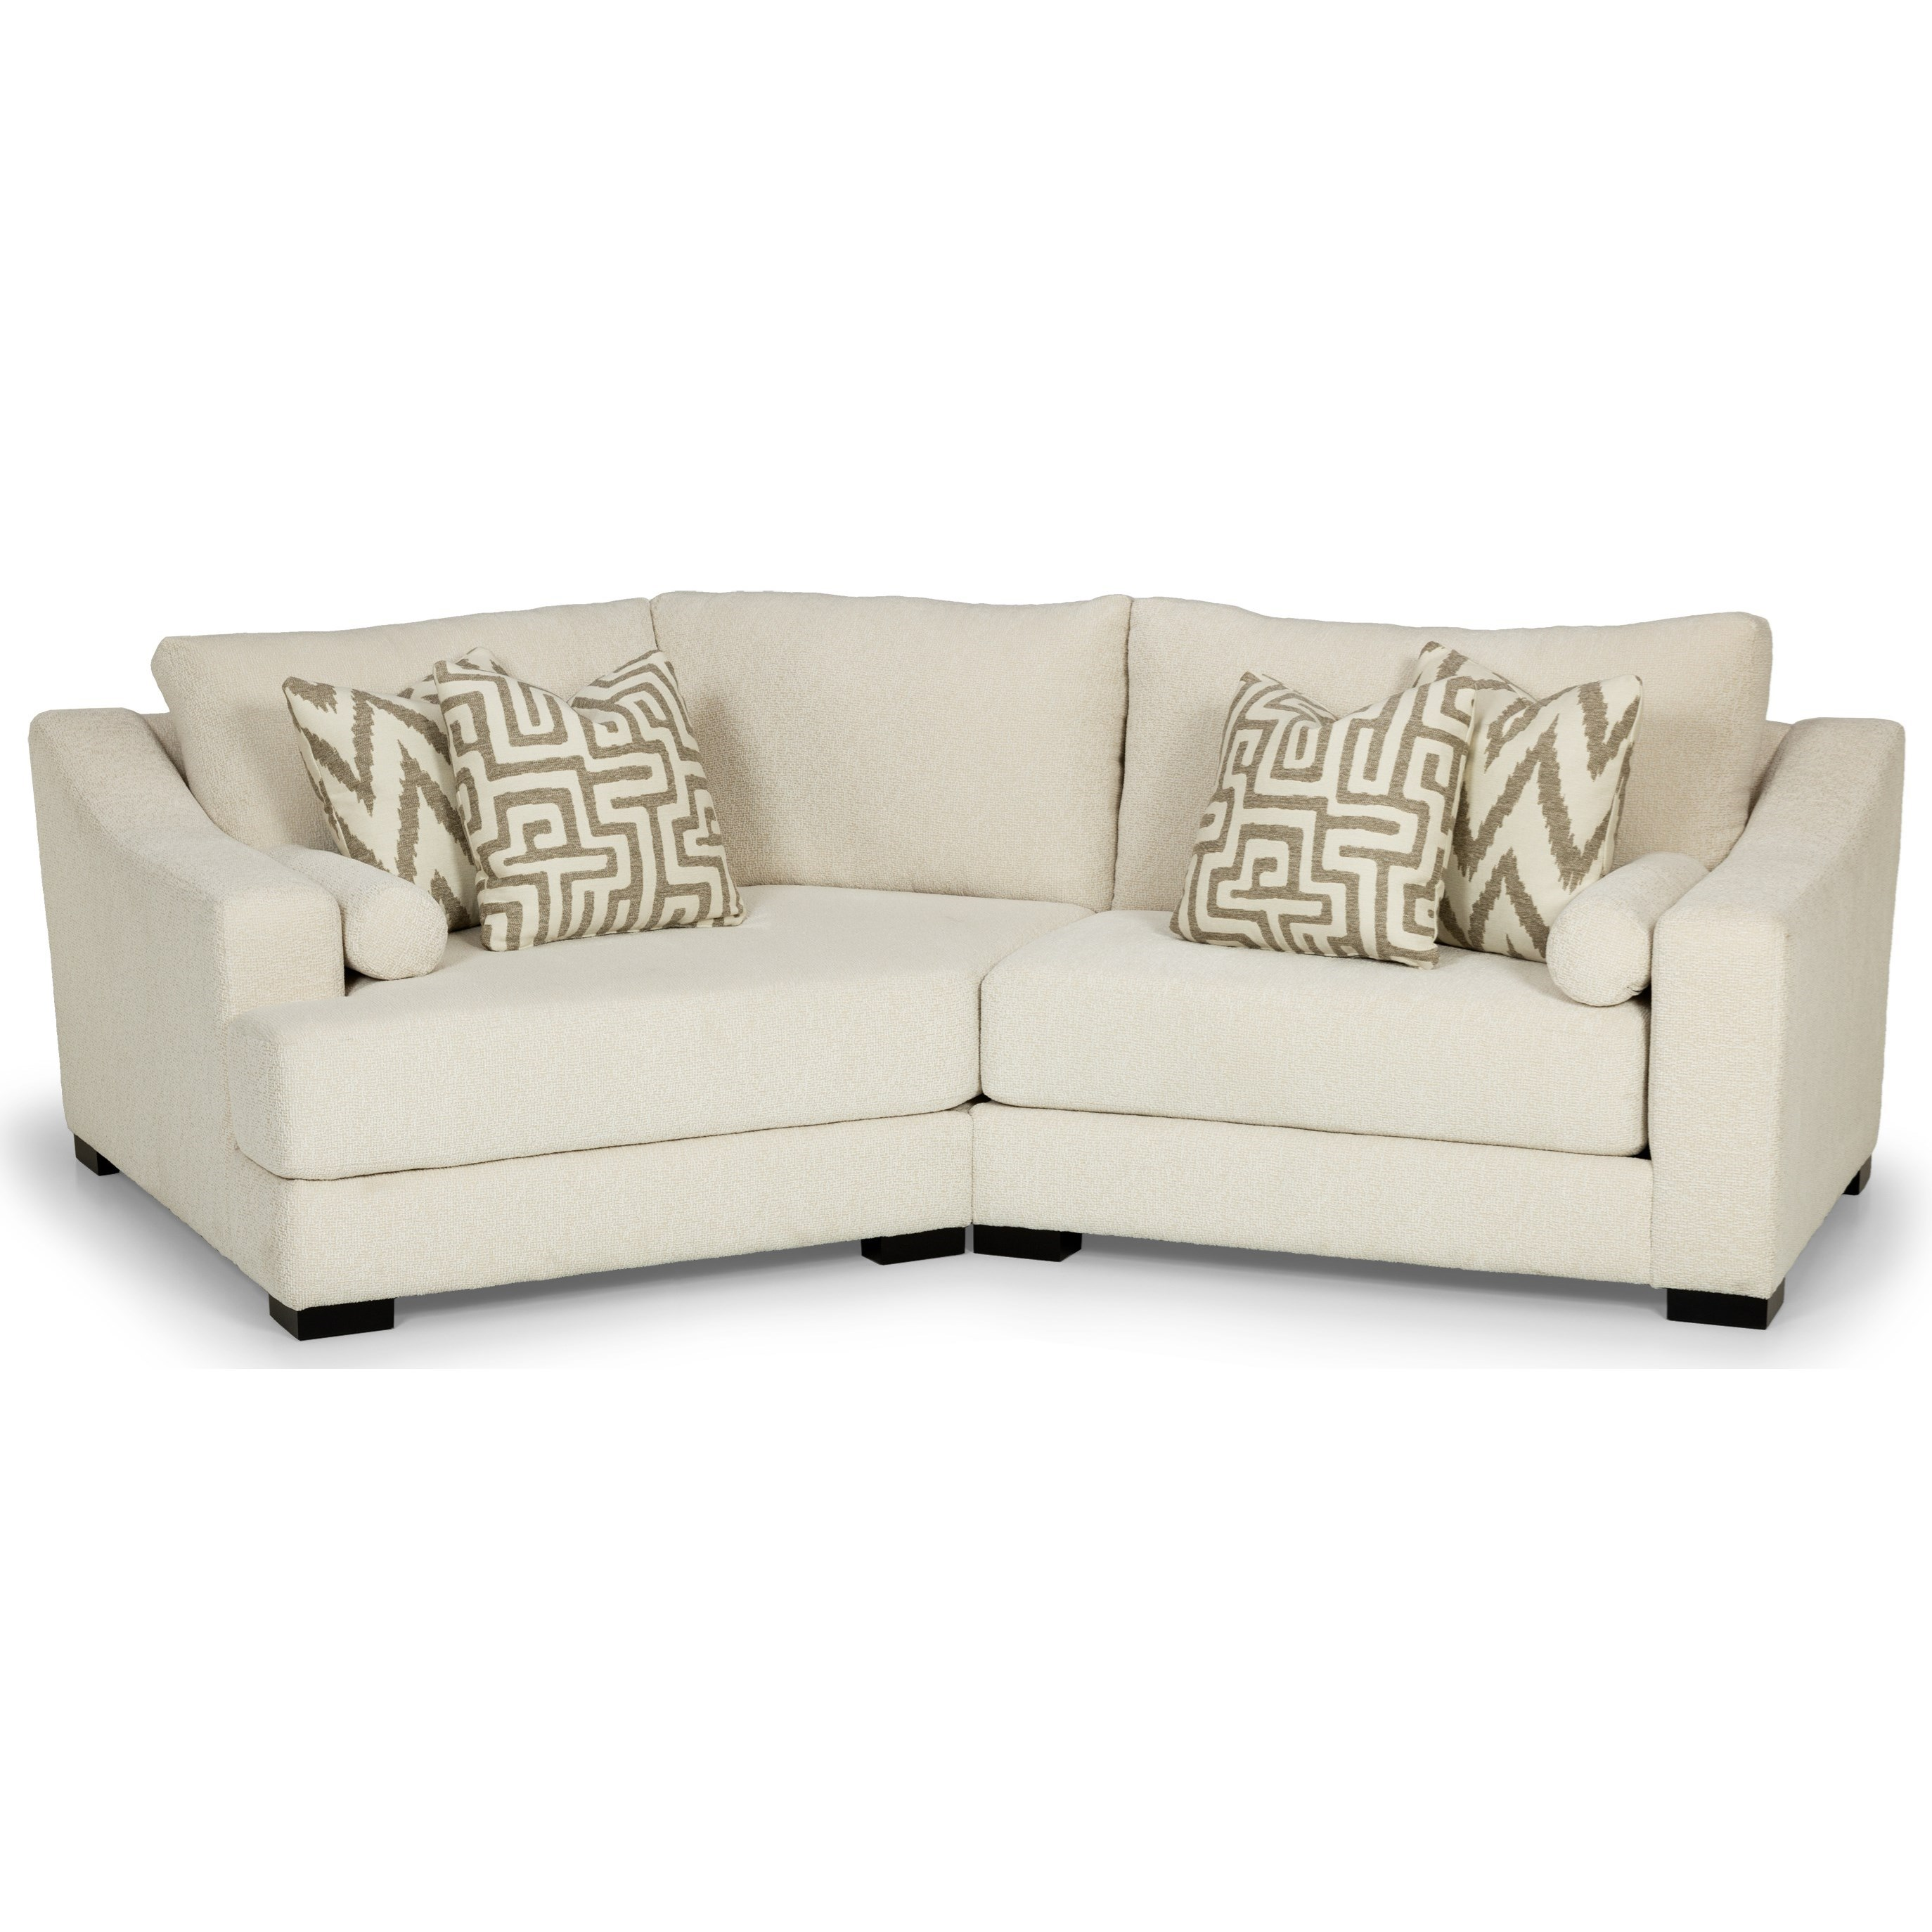 sunset home 424 contemporary 2 seat